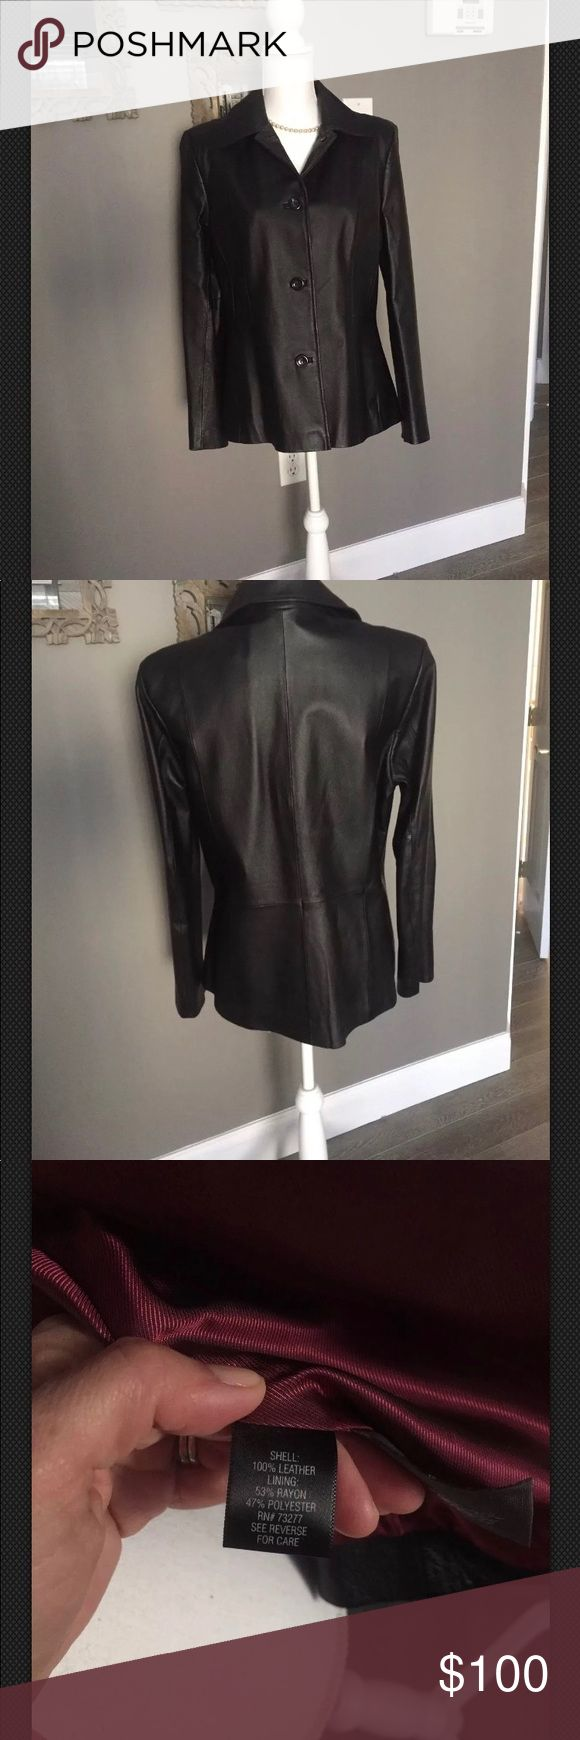 """Ladies black leather jacket size medium This is a new Croft & Barrow black womens jacket without tags. Received as a gift but not my style. Pet free smoke free home. Measures 17"""" shoulder to shoulder and 27.5 from top of collar to bottom hem in back. croft & barrow Jackets & Coats"""